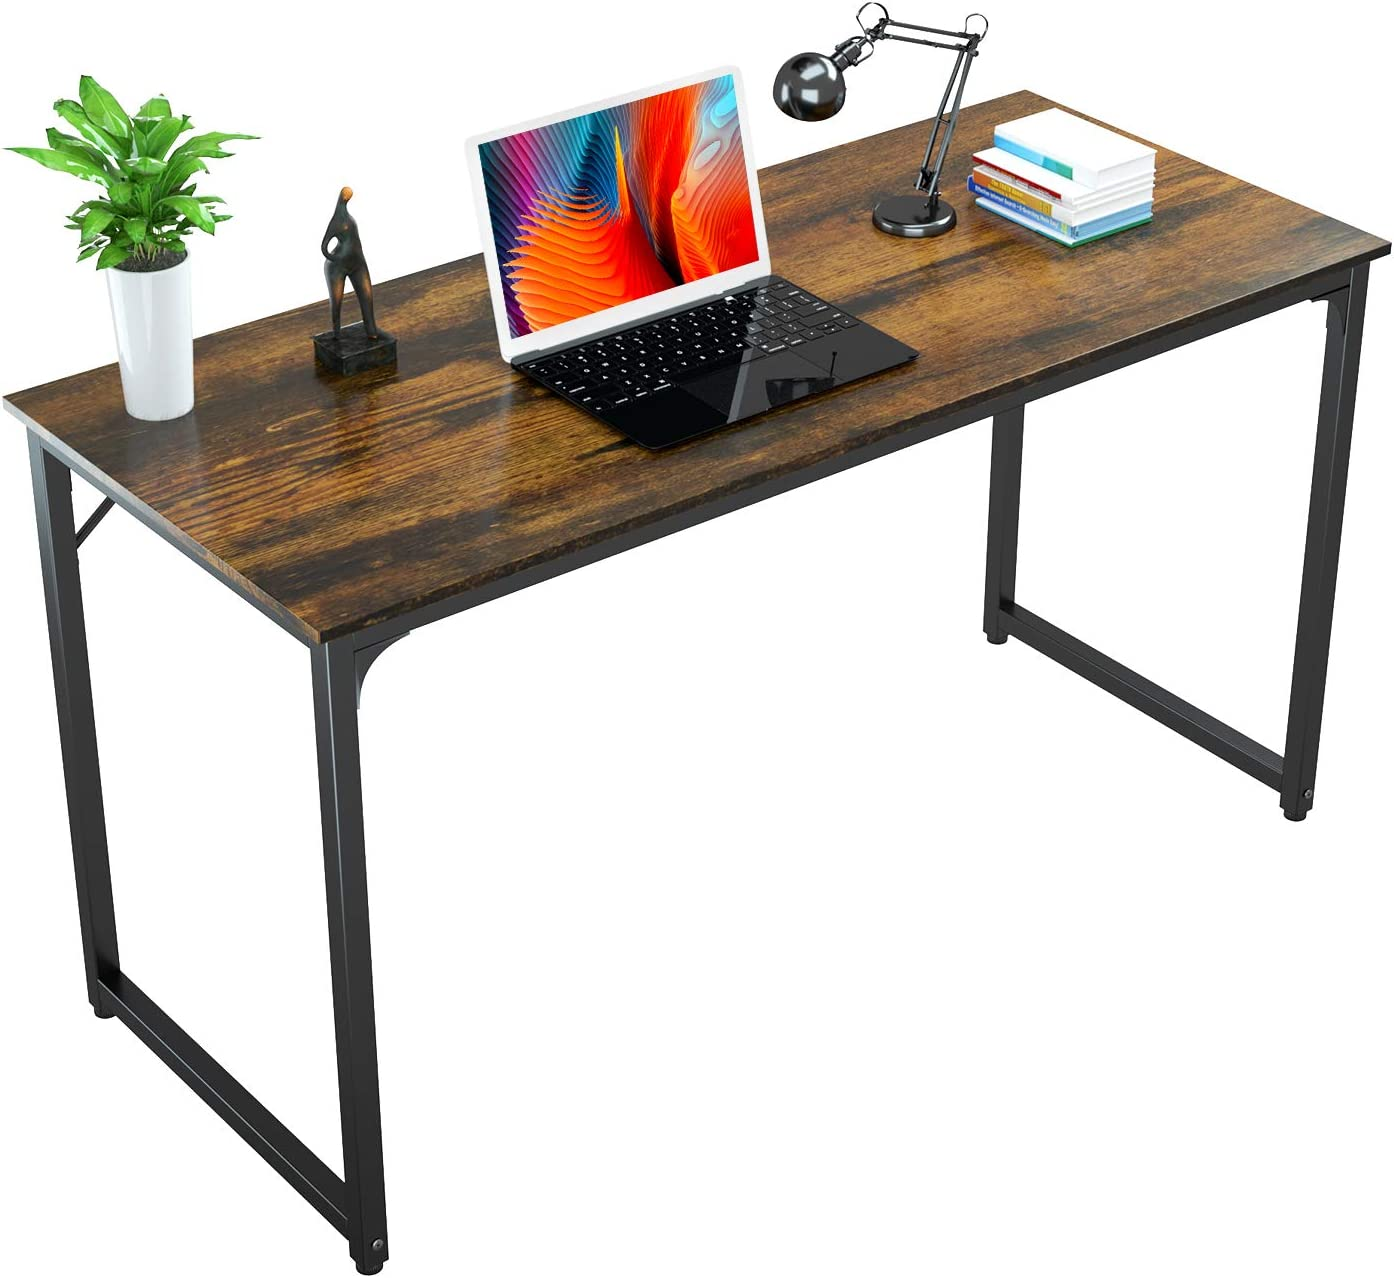 Foxemart Writing Computer Desk Modern Sturdy Office Desks PC Laptop Notebook Simple Study Table for Home Office Workstation, Rustic Brown